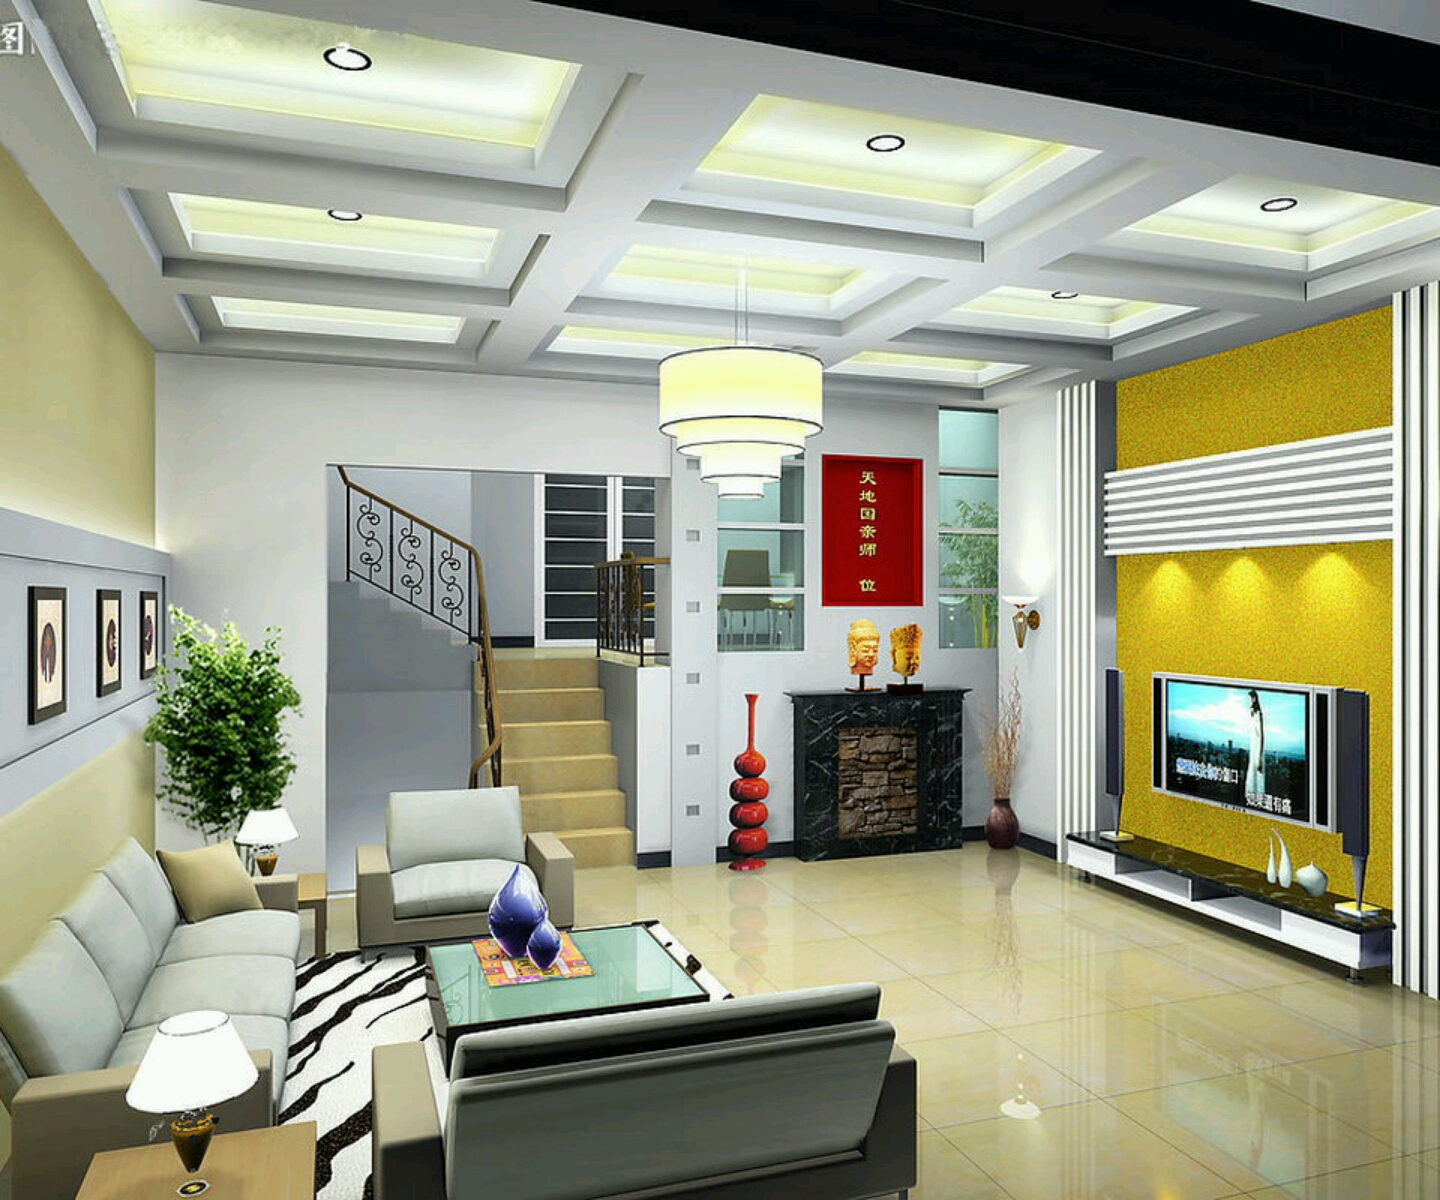 Rumah rumah minimalis: Ultra Modern living rooms interior